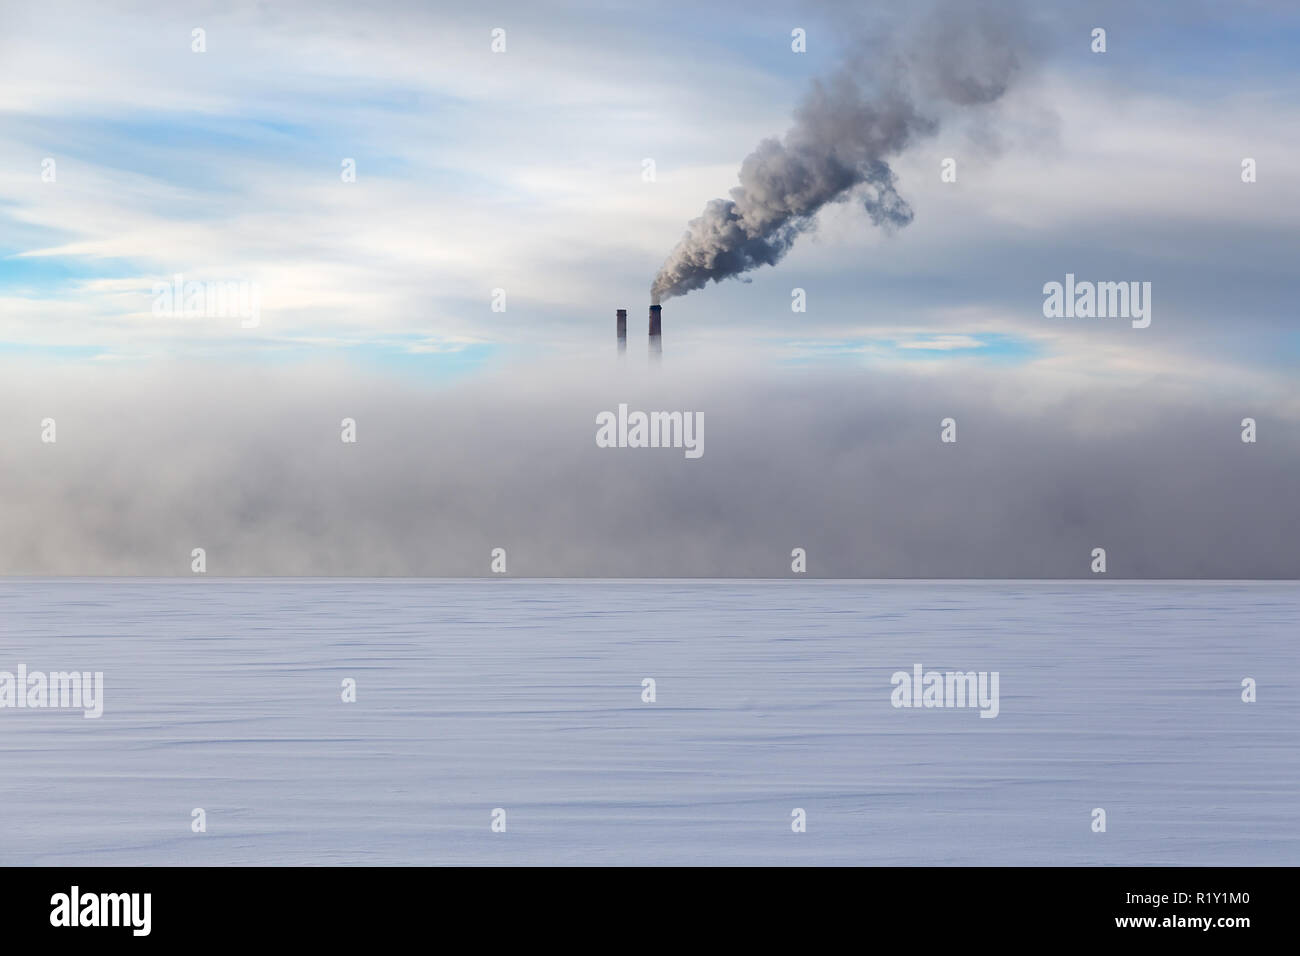 Smoke pipes in heavy fog in winter on a background cloudy sky - Stock Image